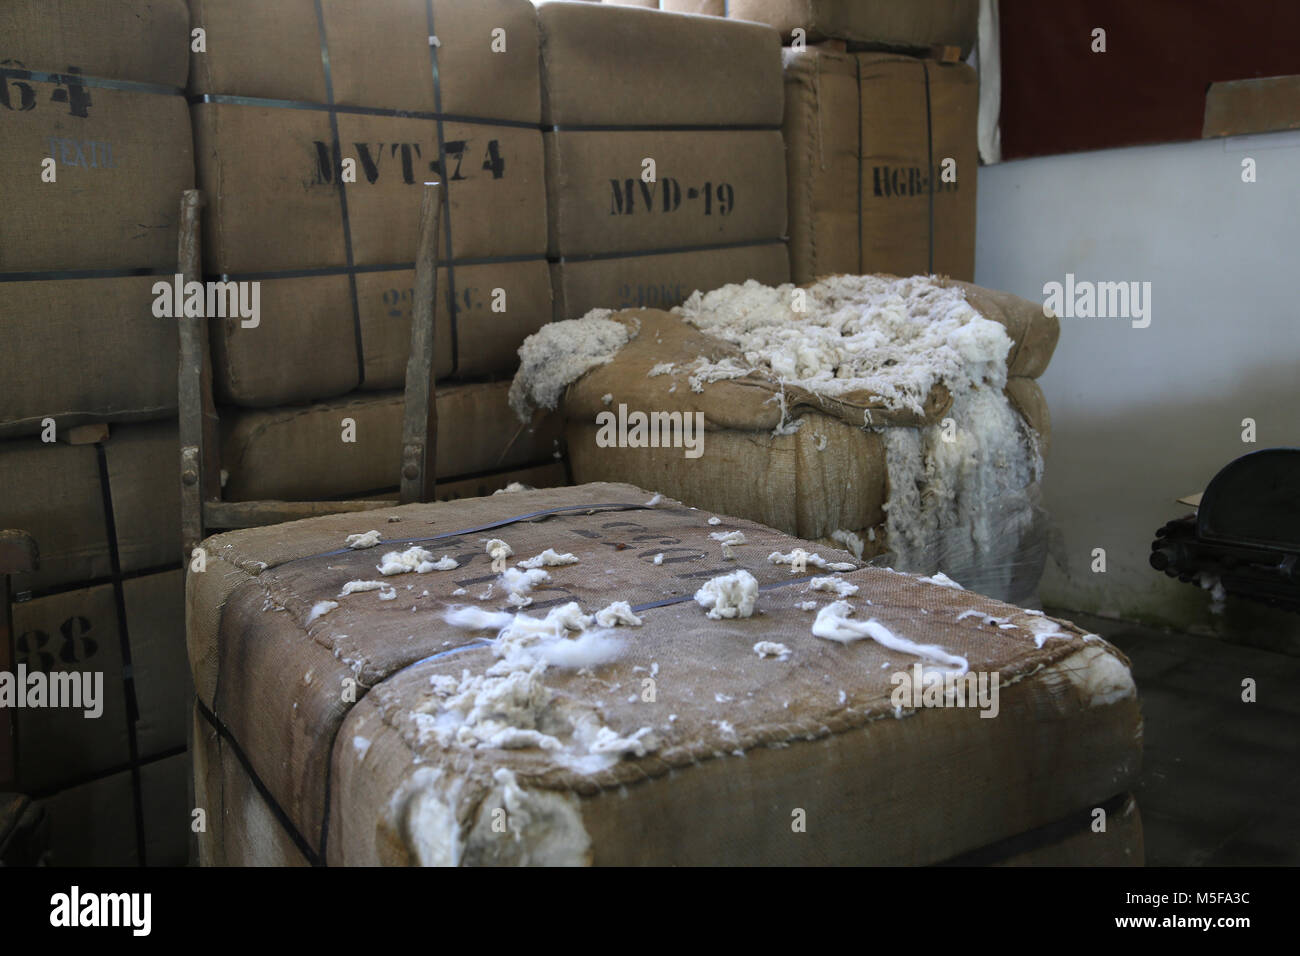 Spain, Catalonia, Puig-Reig. Can Vidal. Textile Industrial colony. 1901-1980. Cotton Bale. - Stock Image